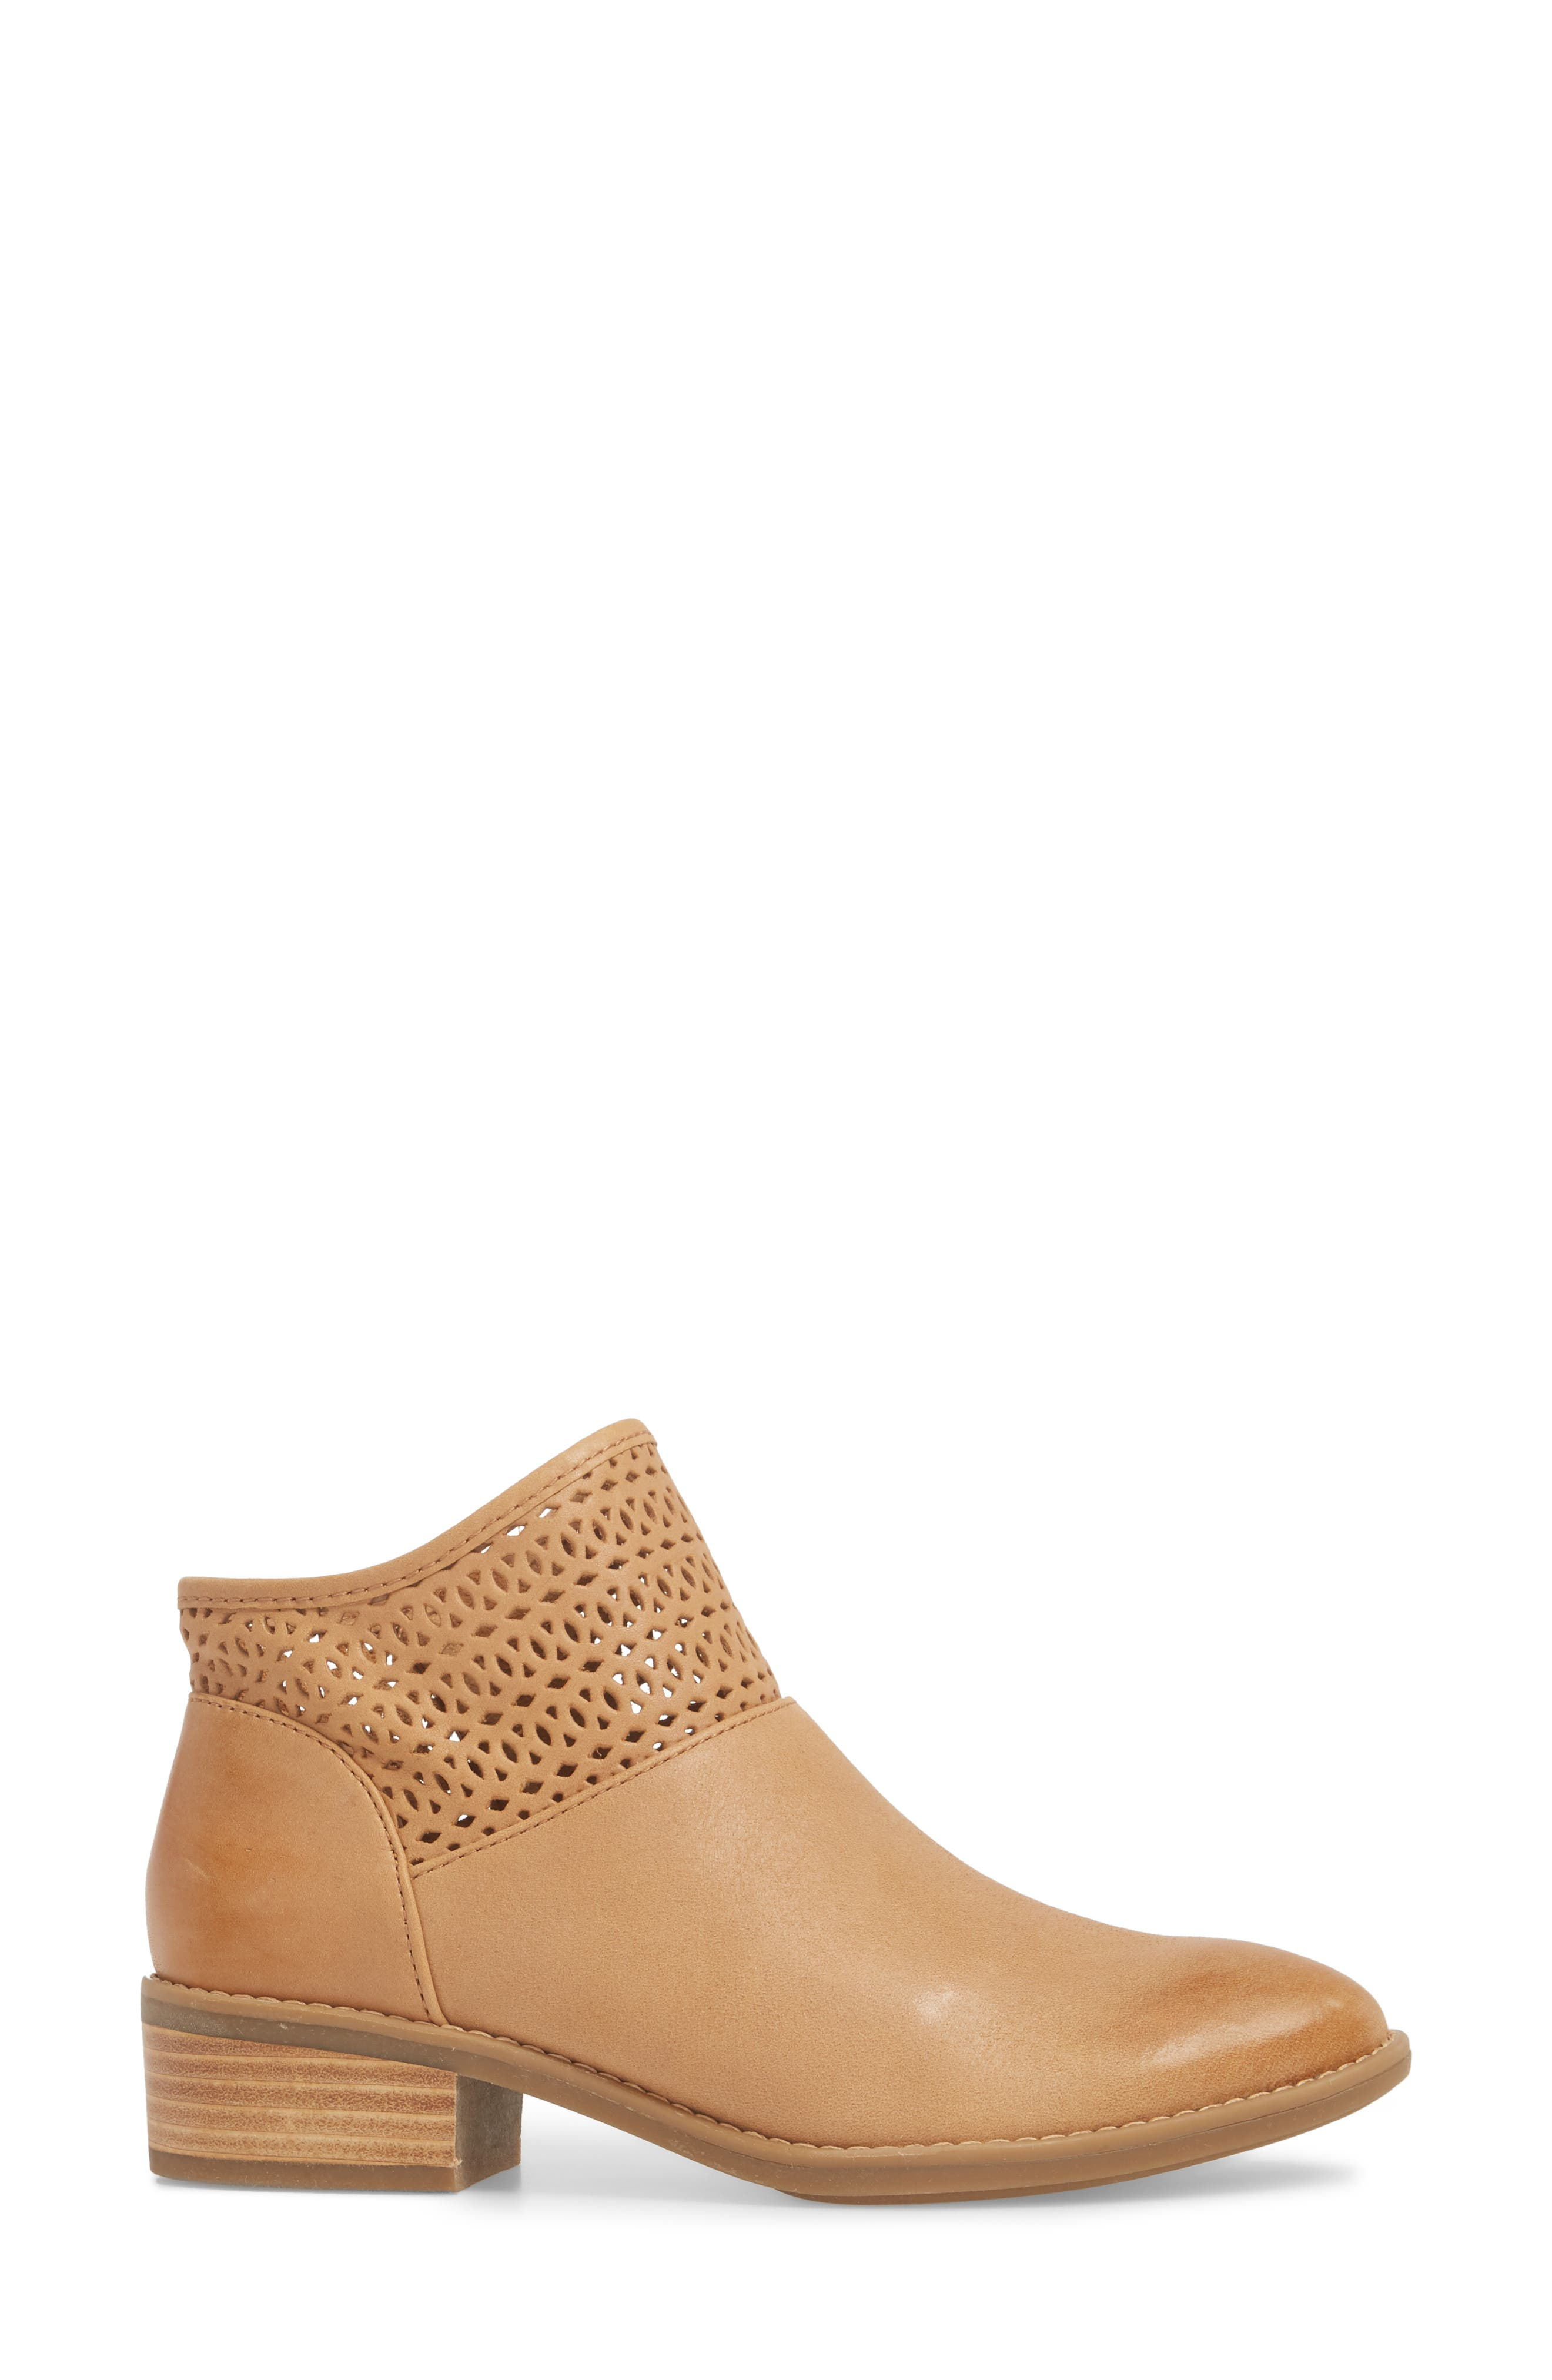 Caileen Bootie,                             Alternate thumbnail 3, color,                             NEW CARAMEL